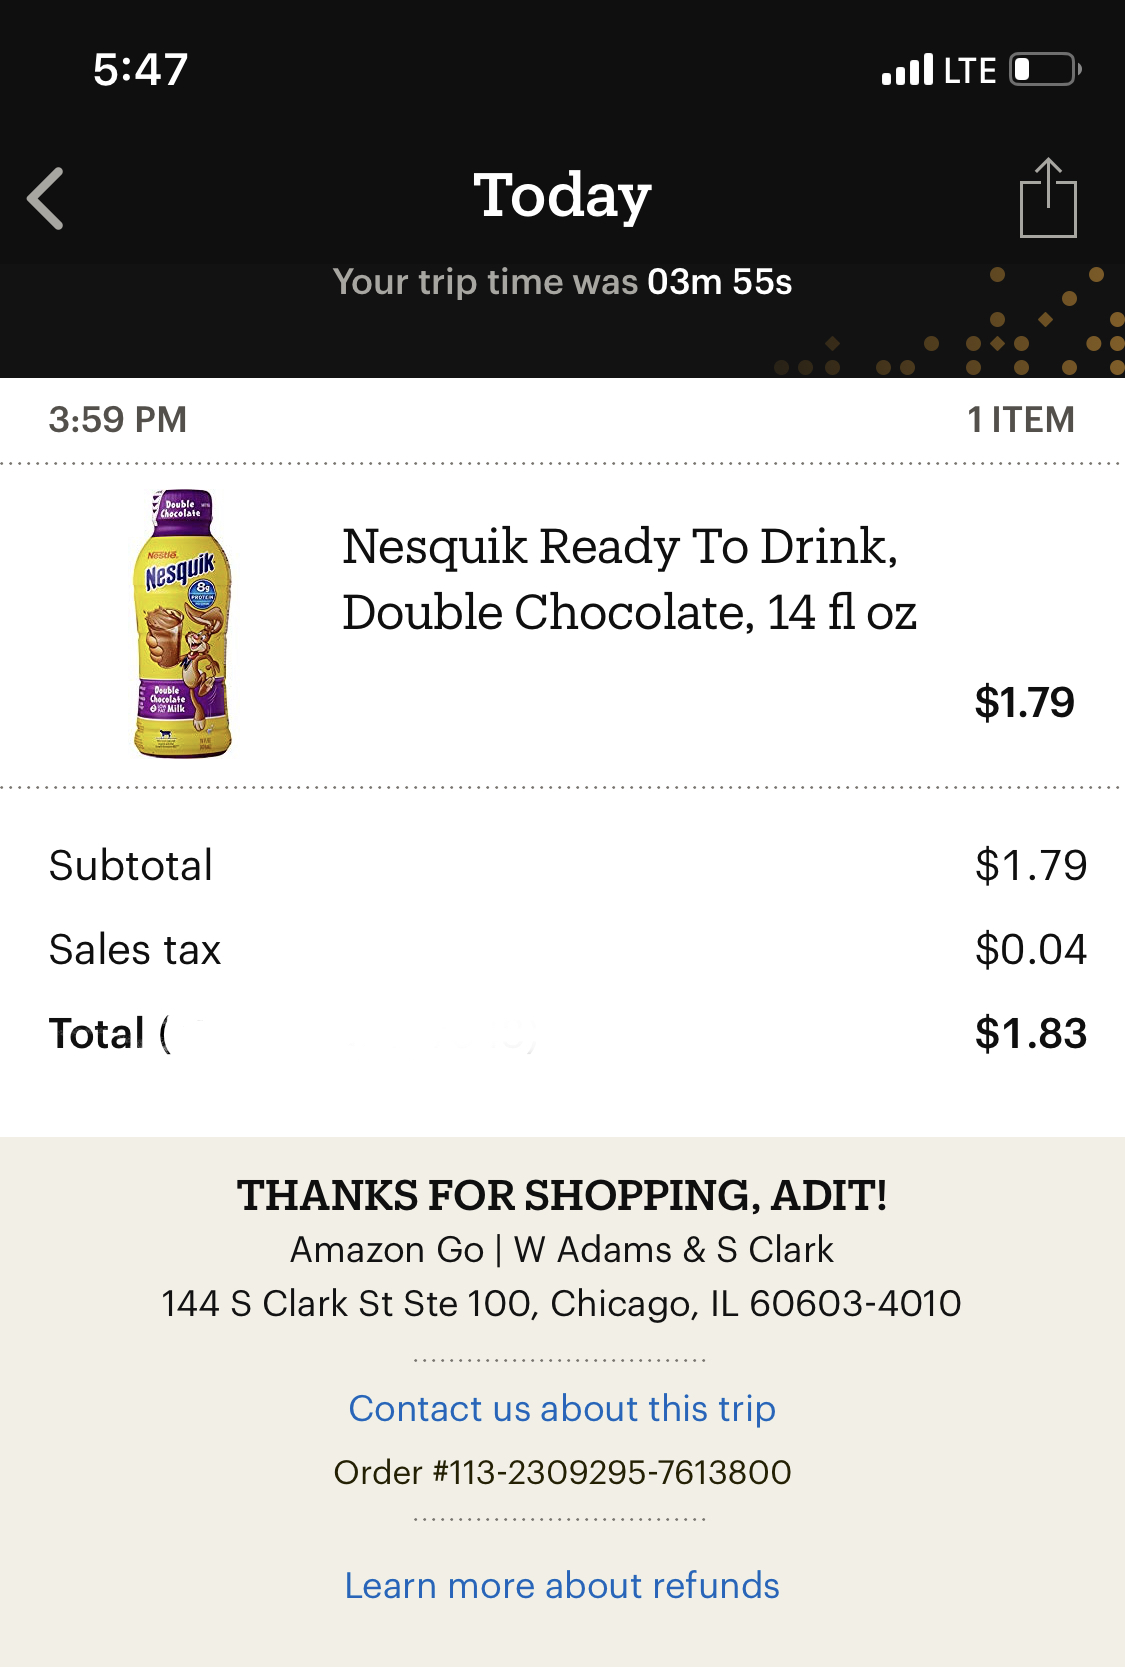 And sure enough, the tech worked as promised. My receipt came through the Amazon Go App.